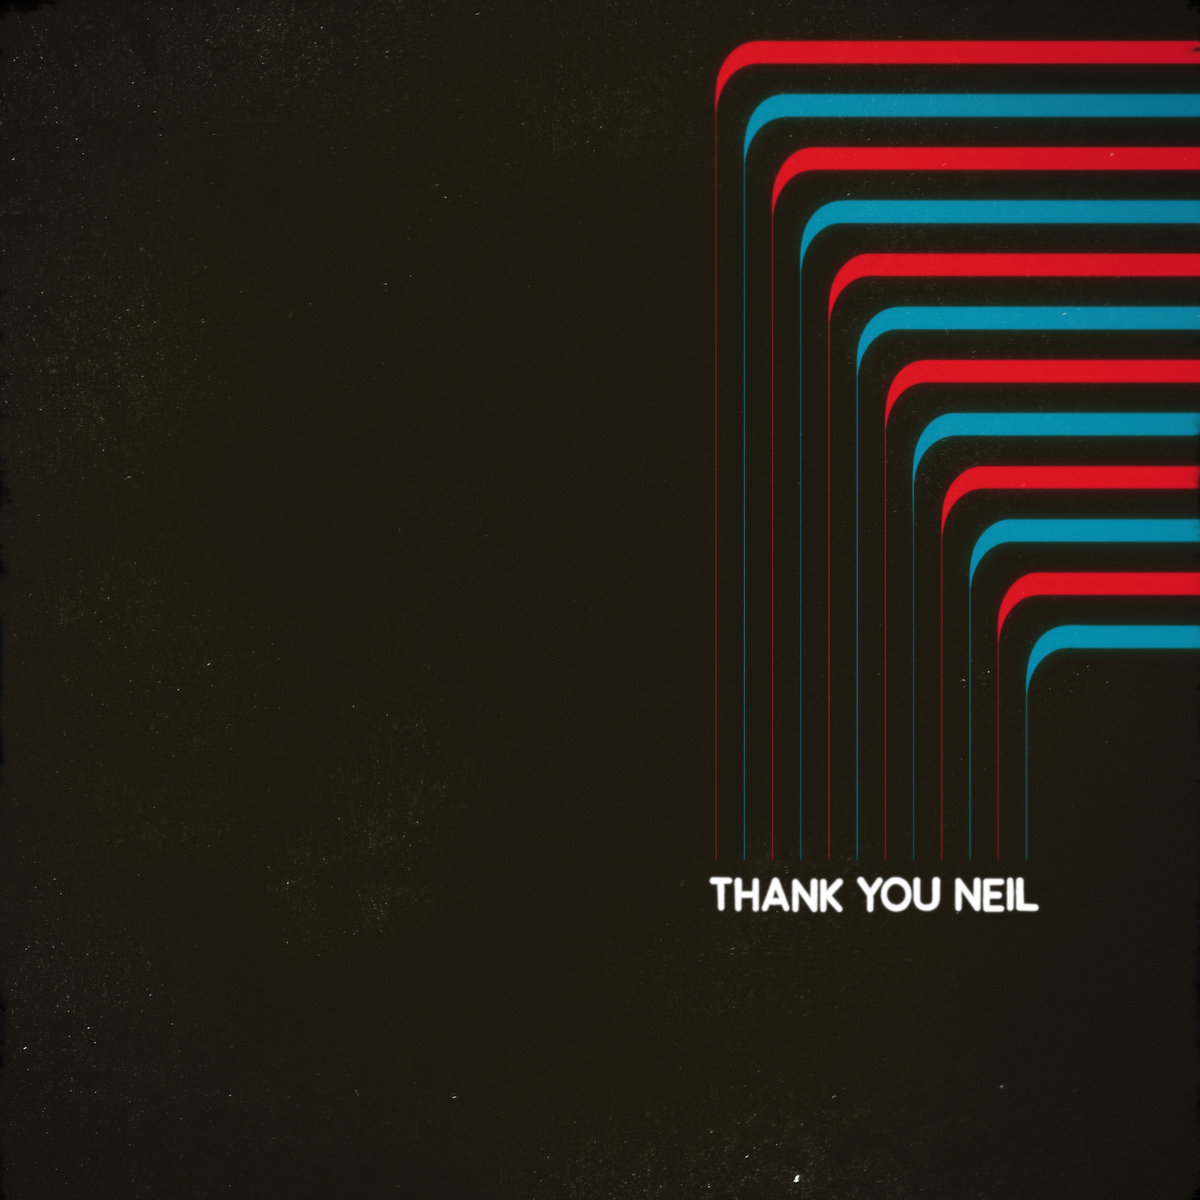 Dumbo Gets Mad - Loosing It @ 'Thank You Neil' album (alternative, los angeles)